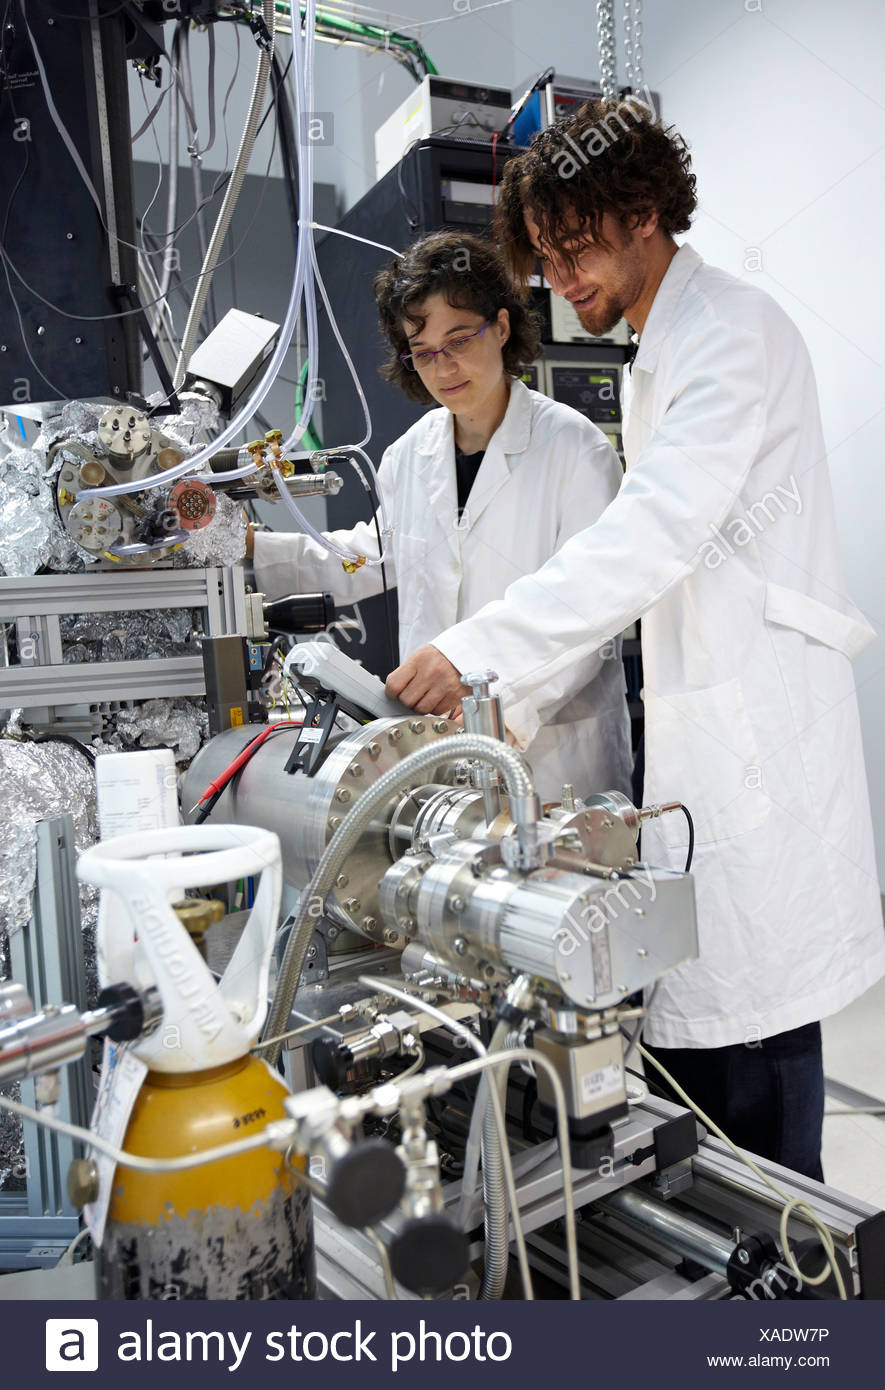 Photoemission spectroscopy in ultra-high vacuum (UHV), Nanophysics laboratory, Materials Physics Center is a joint center of - Stock Image